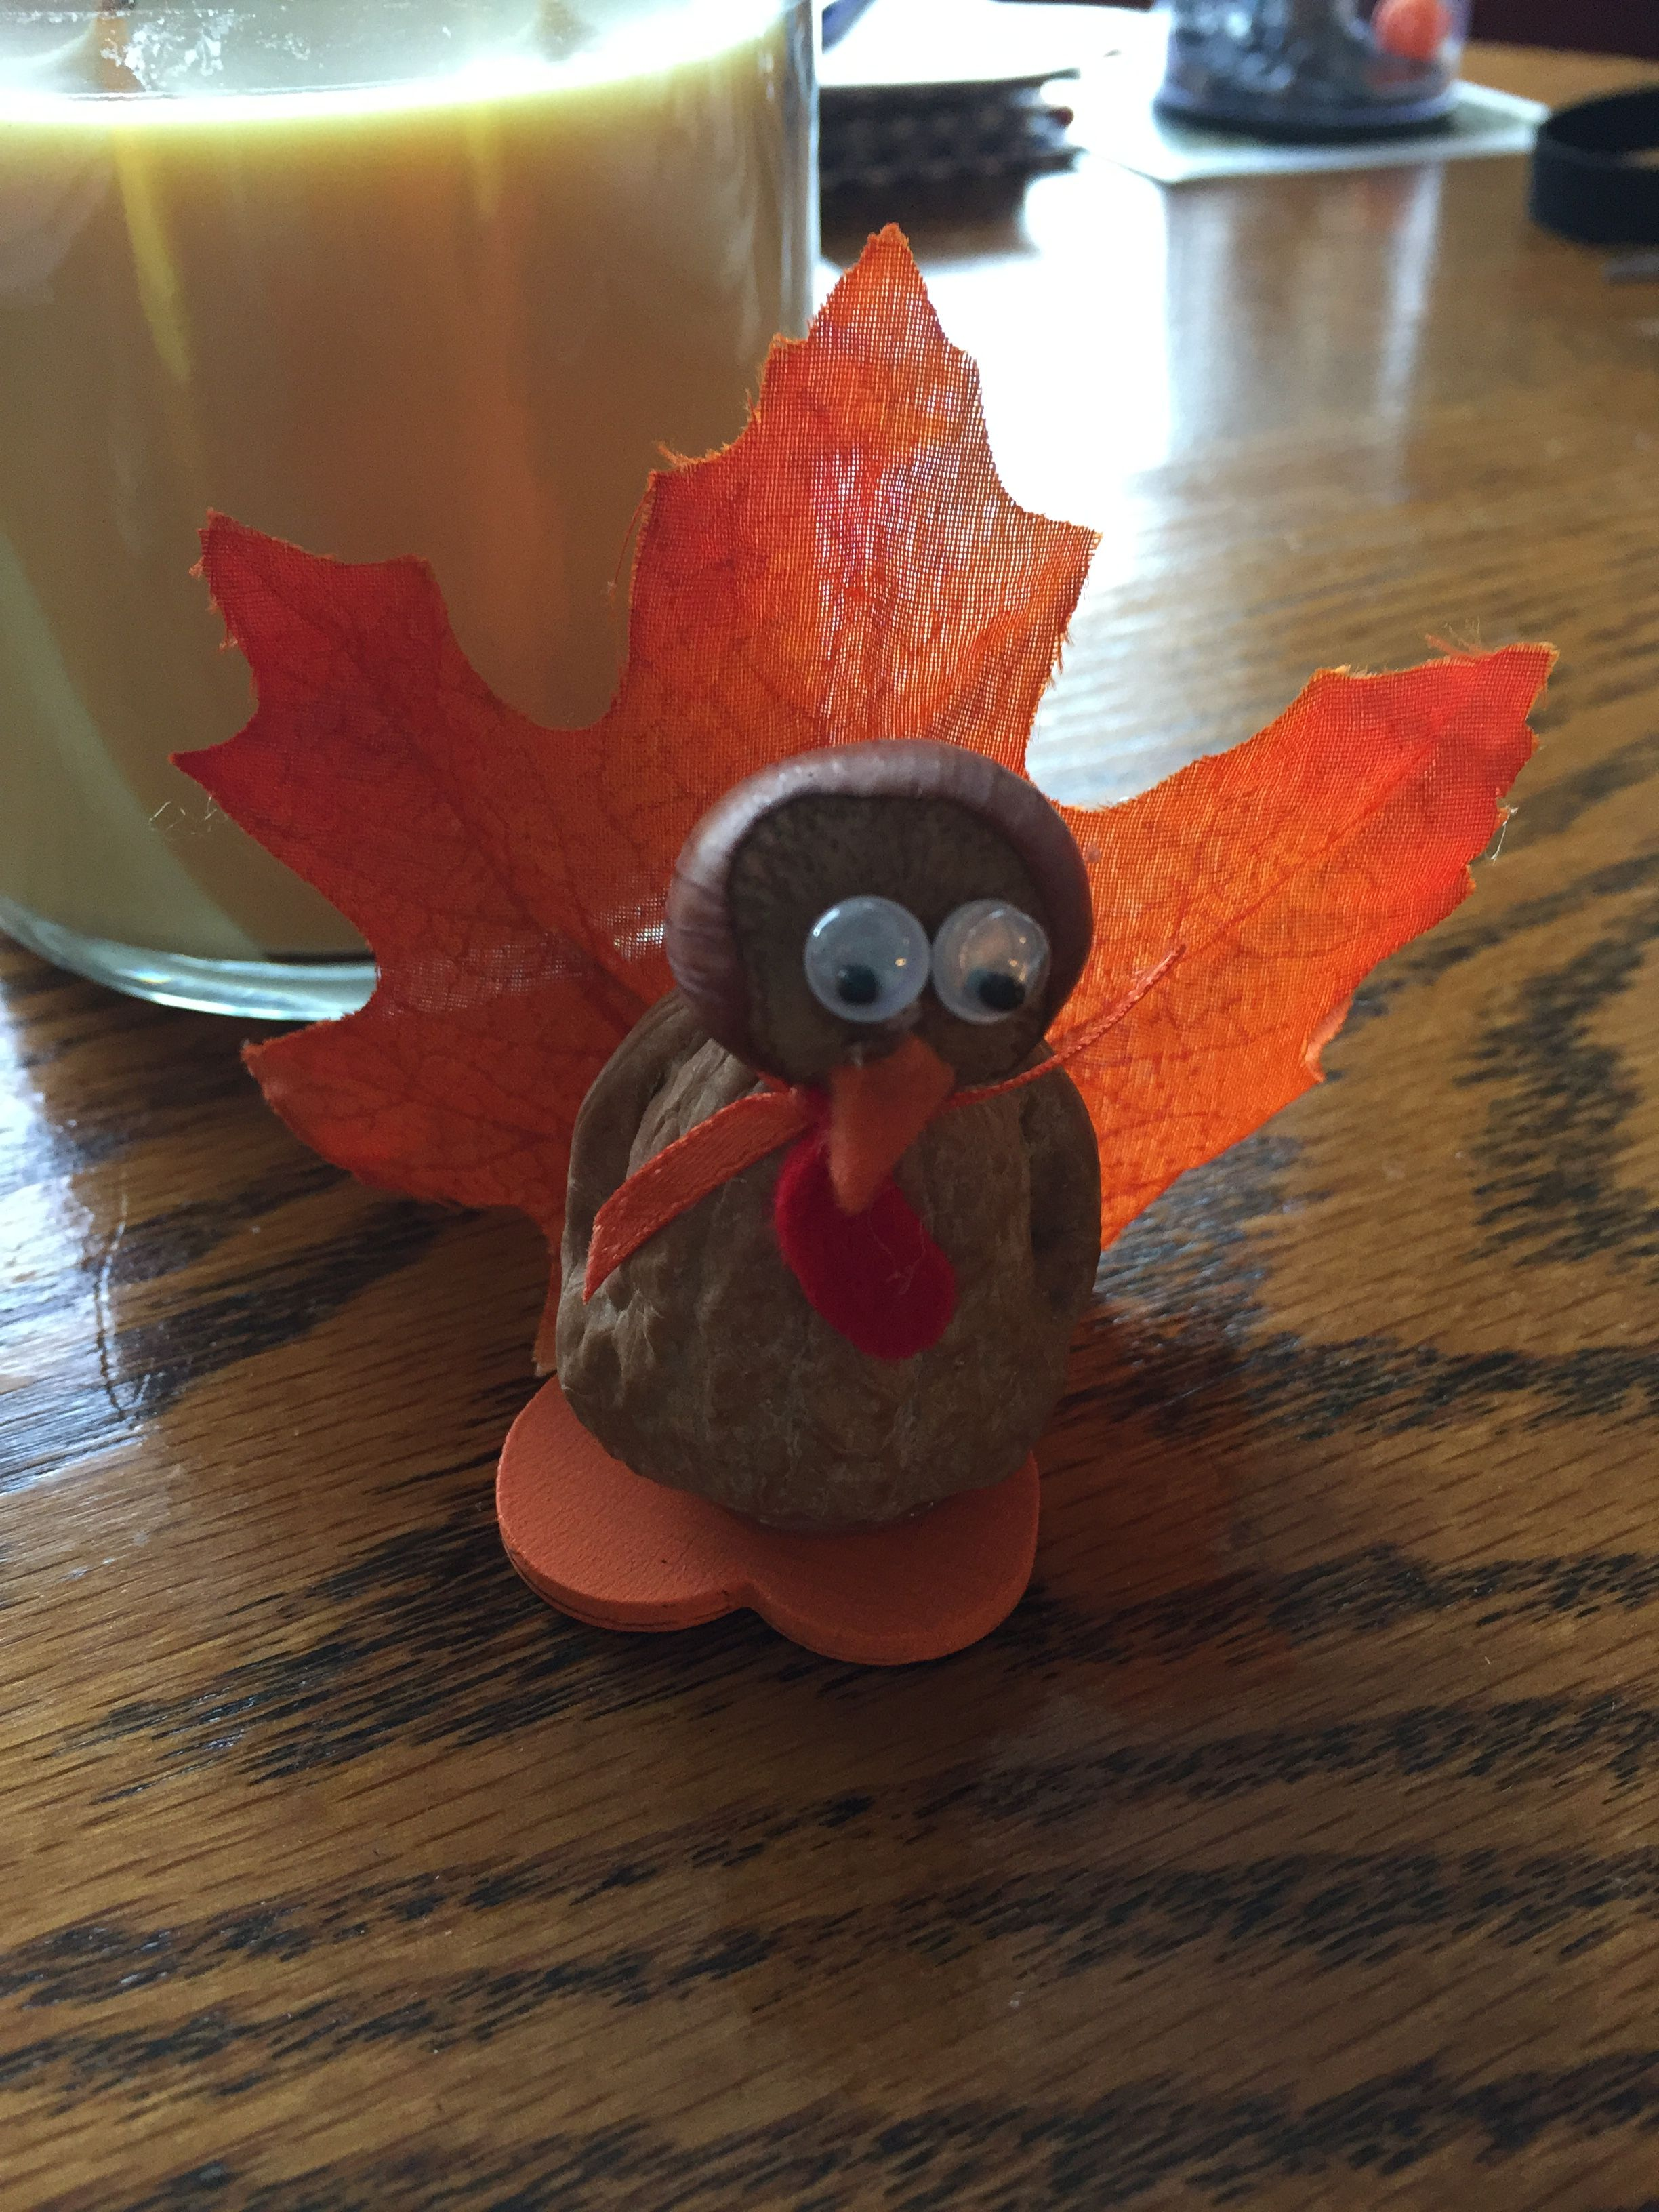 Little turkey | Christmas ornaments, Holiday decor, Holiday